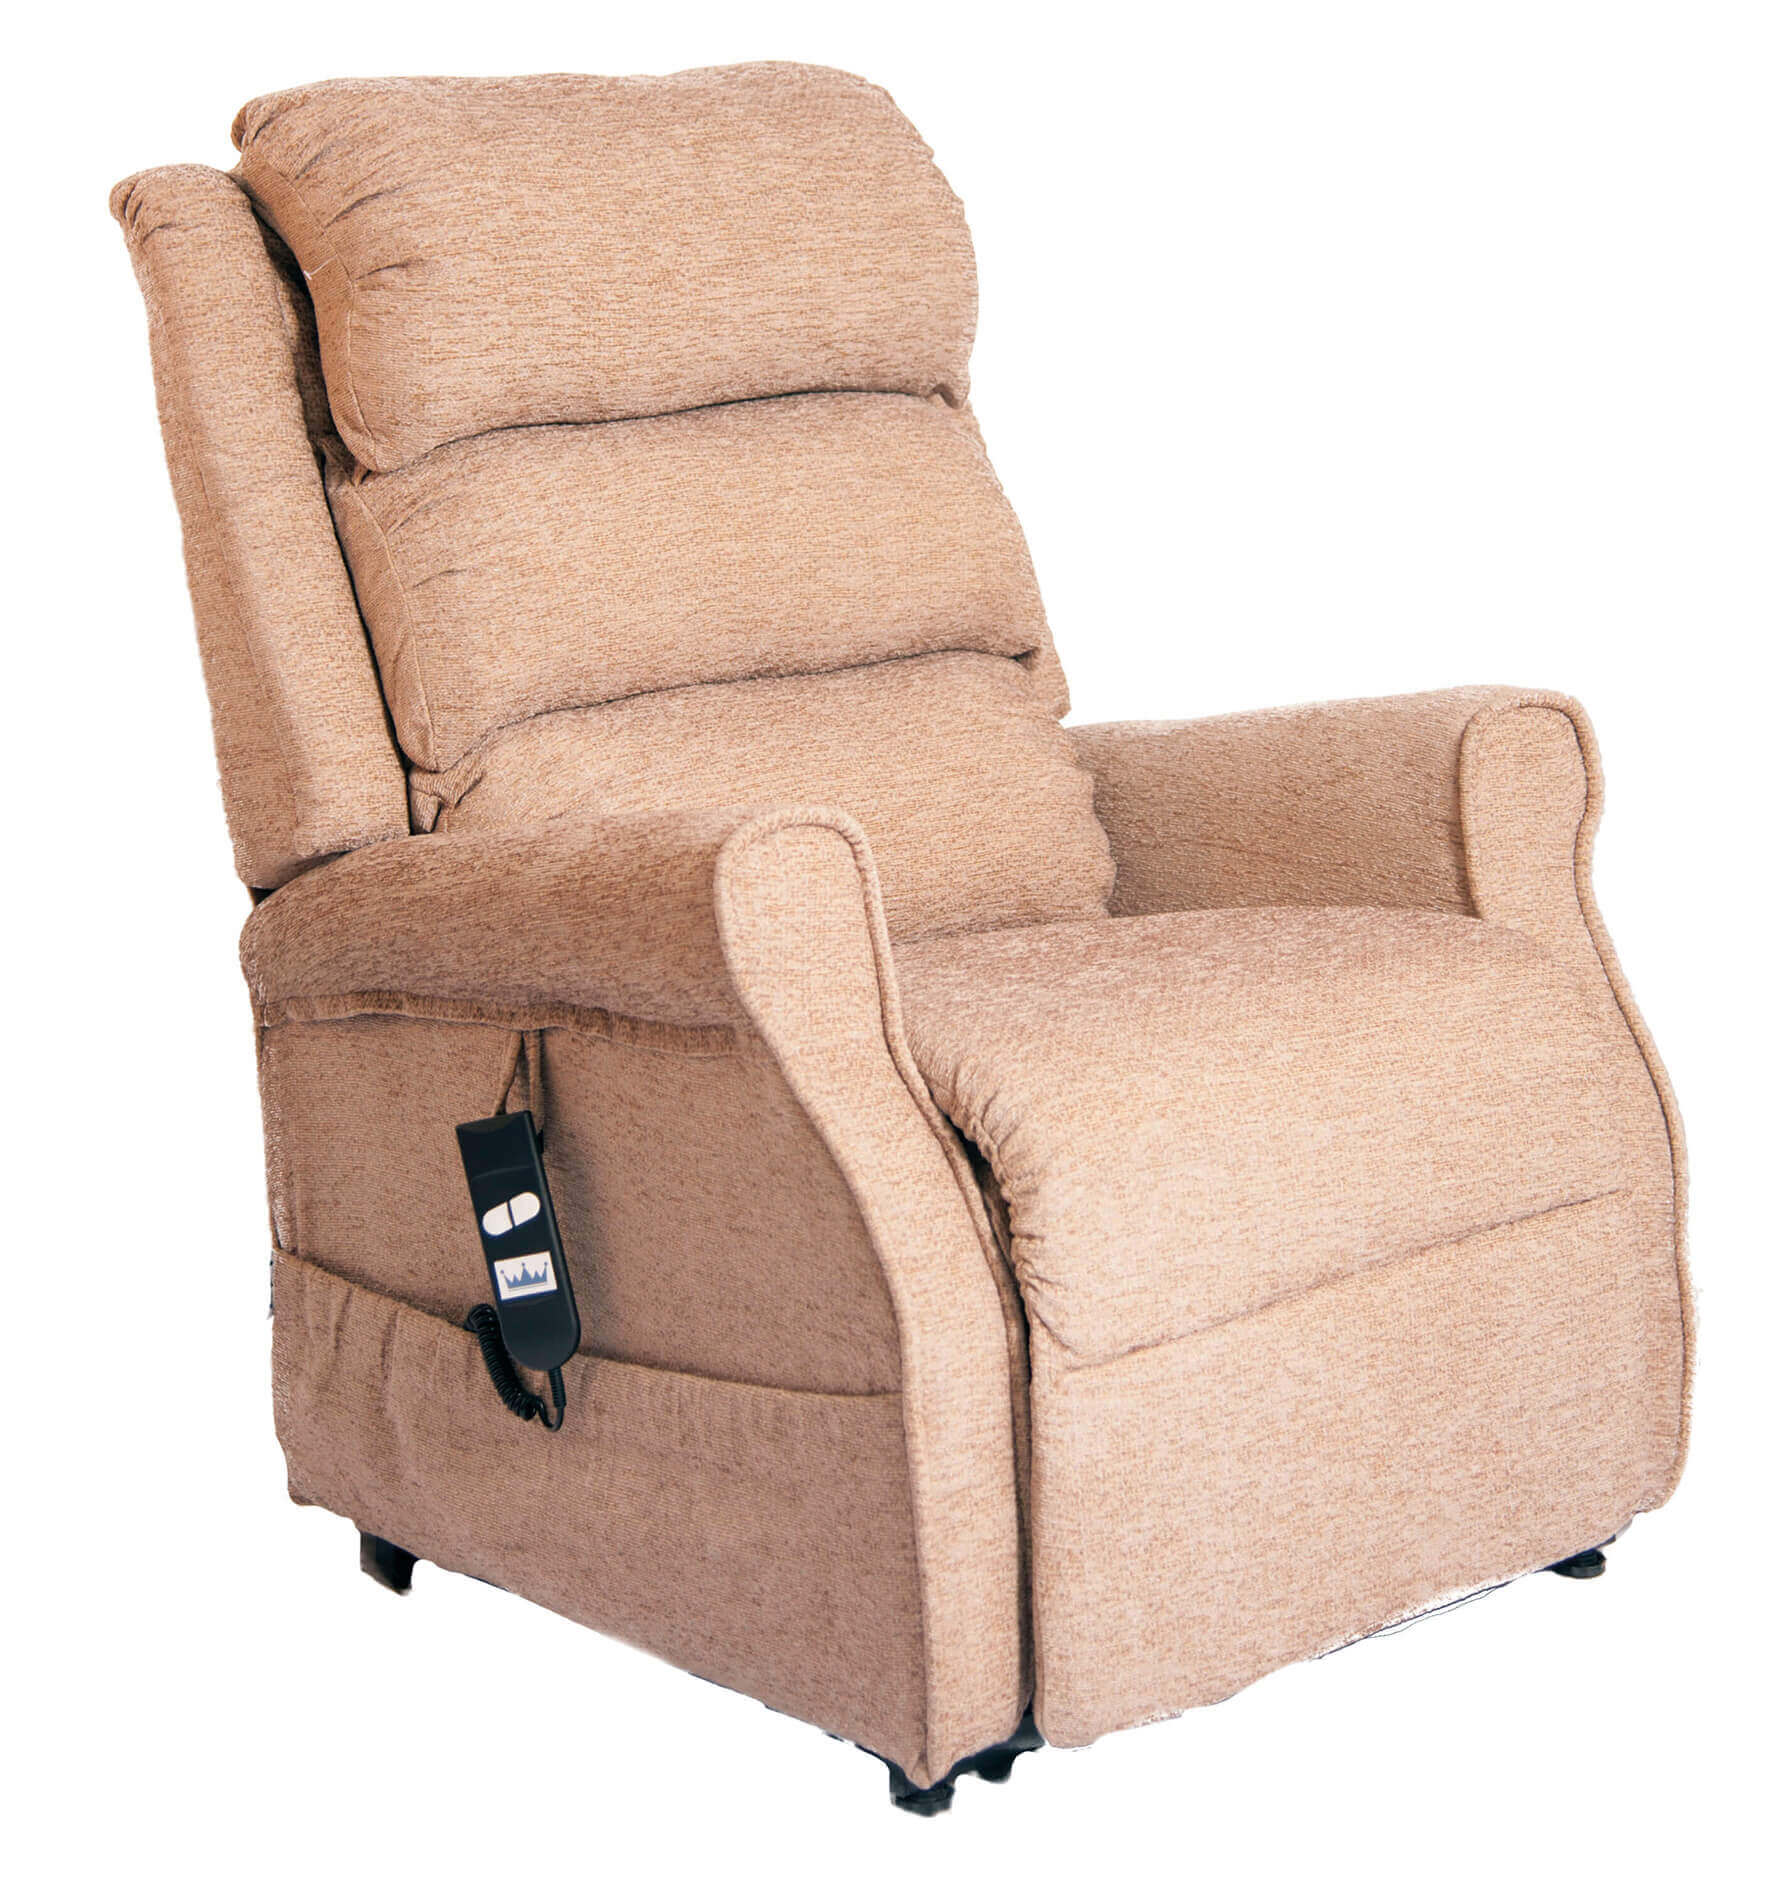 The Kingsley riser recliner chair